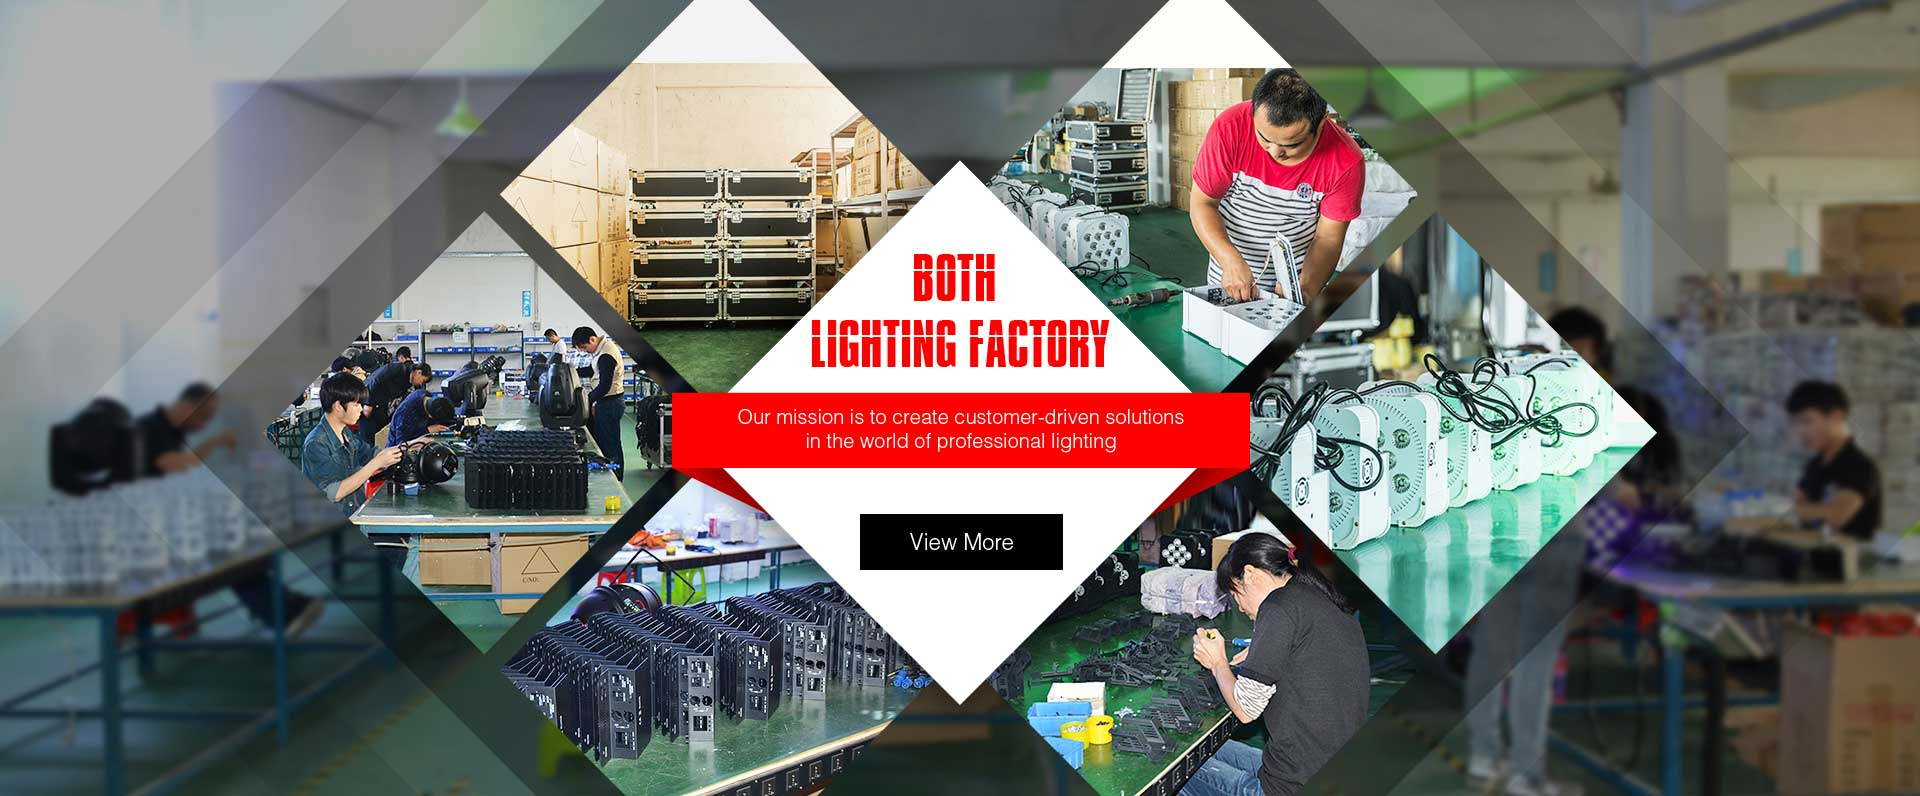 both lighting factory